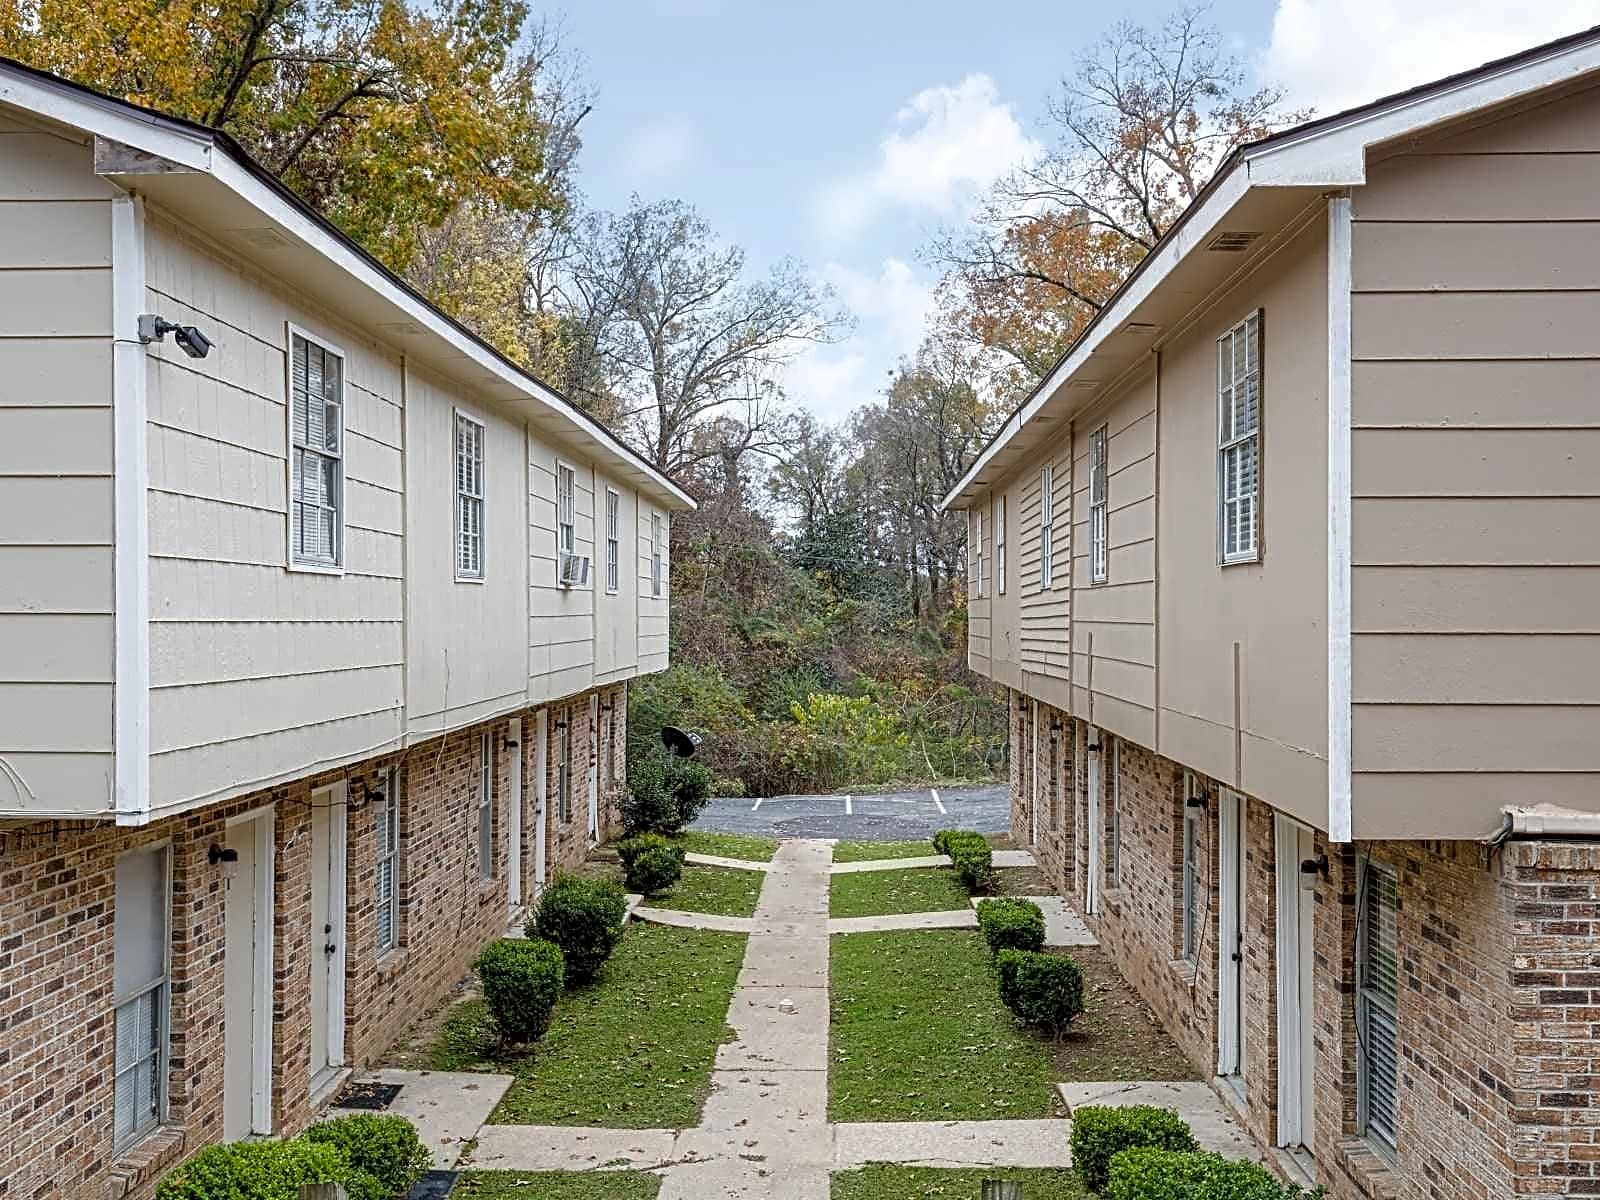 435-445 Lake Hill Dr<BR>2 Bedroom 1 1/2 Bath Townhouses